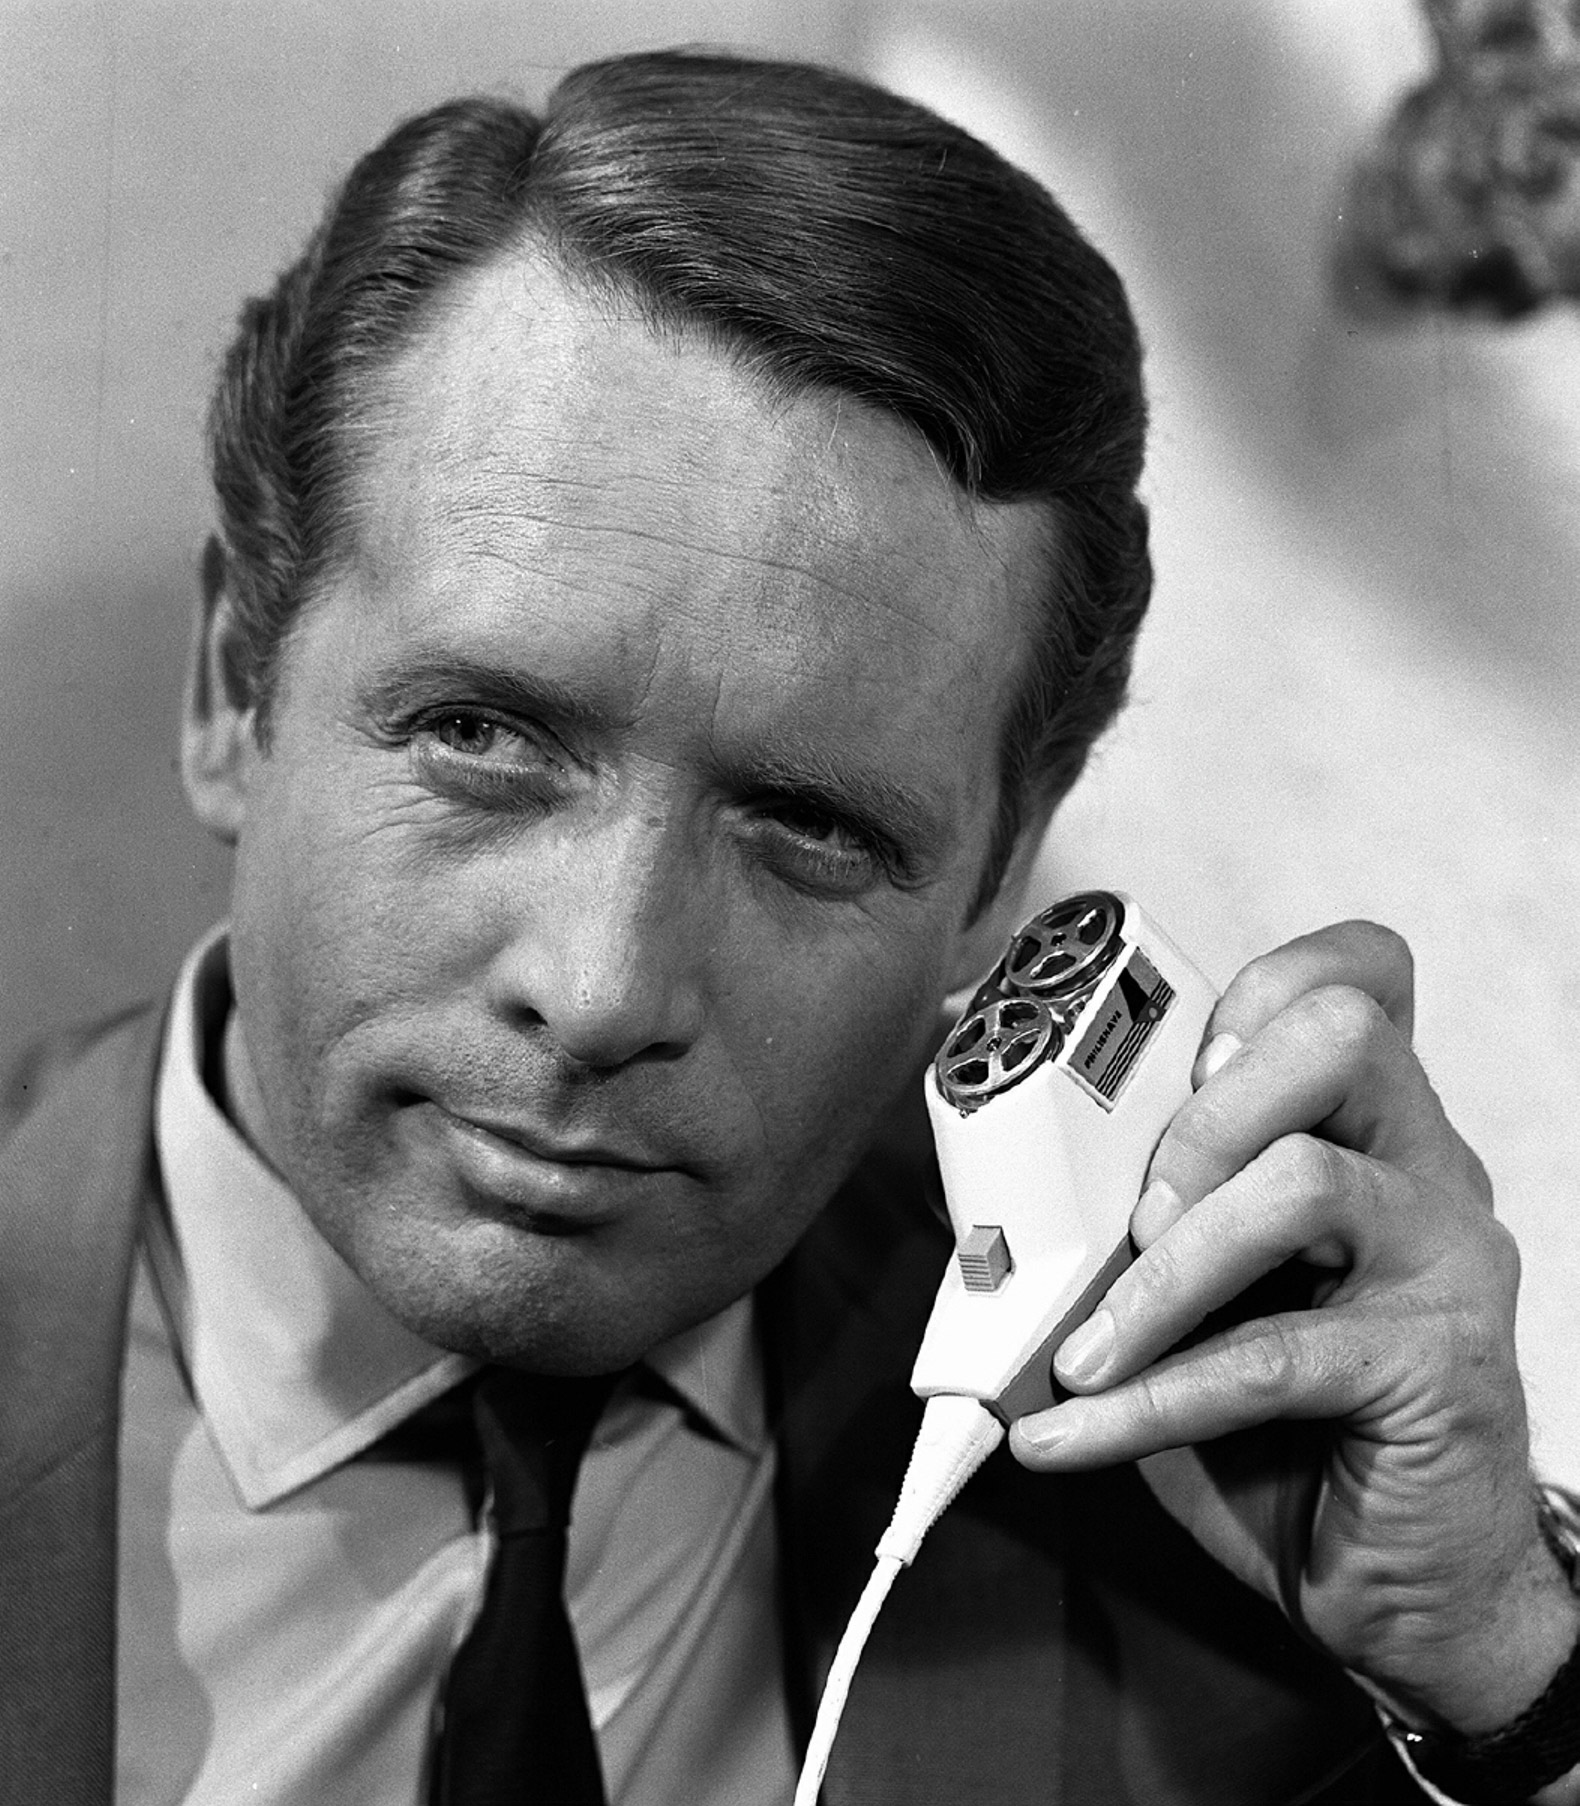 patrick mcgoohan photos